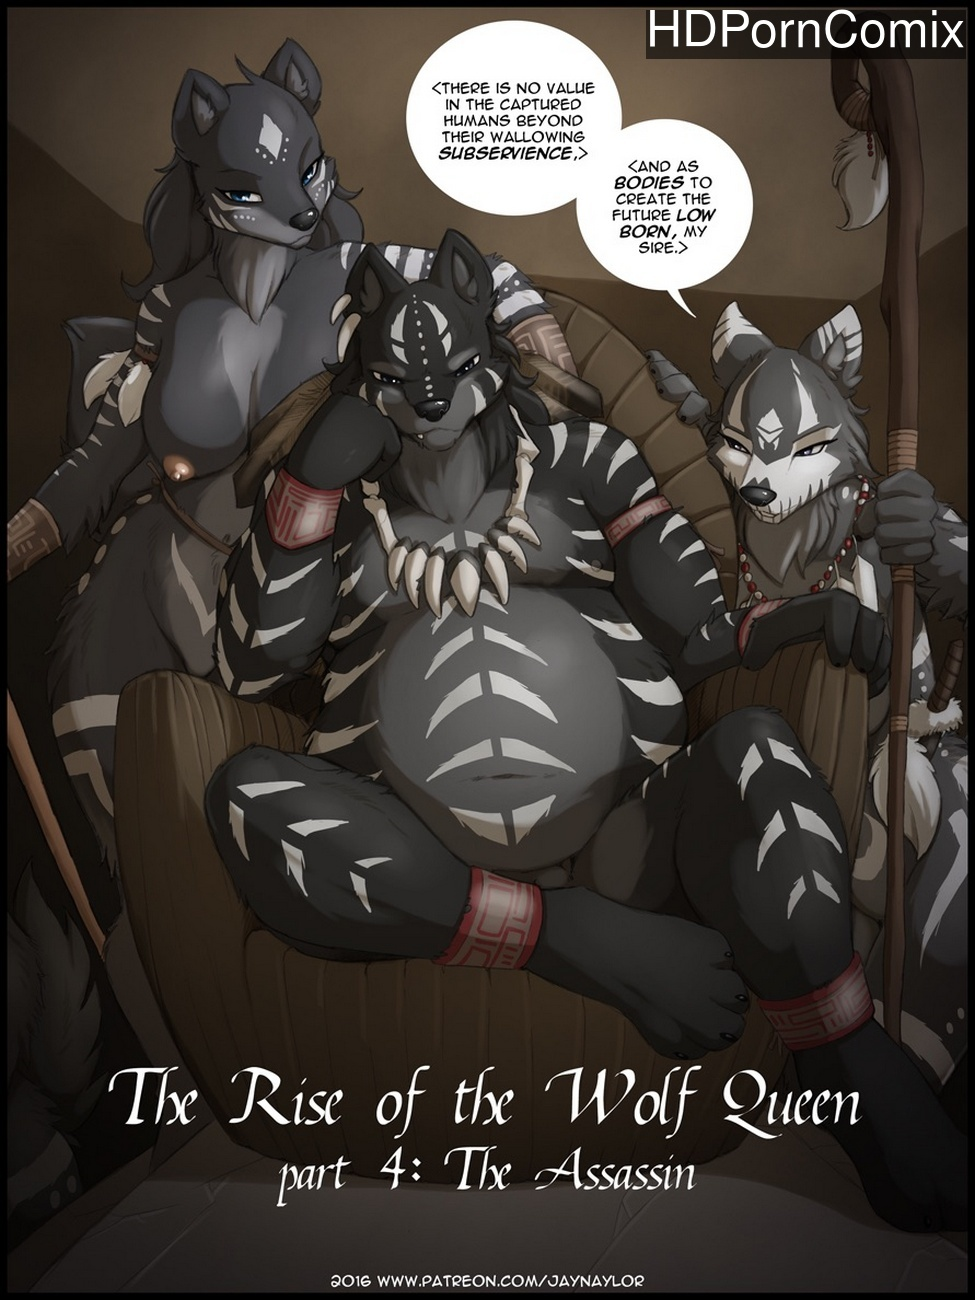 Assasin Animated Porn Gay the rise of the wolf queen 4 - the assassin cartoon comic